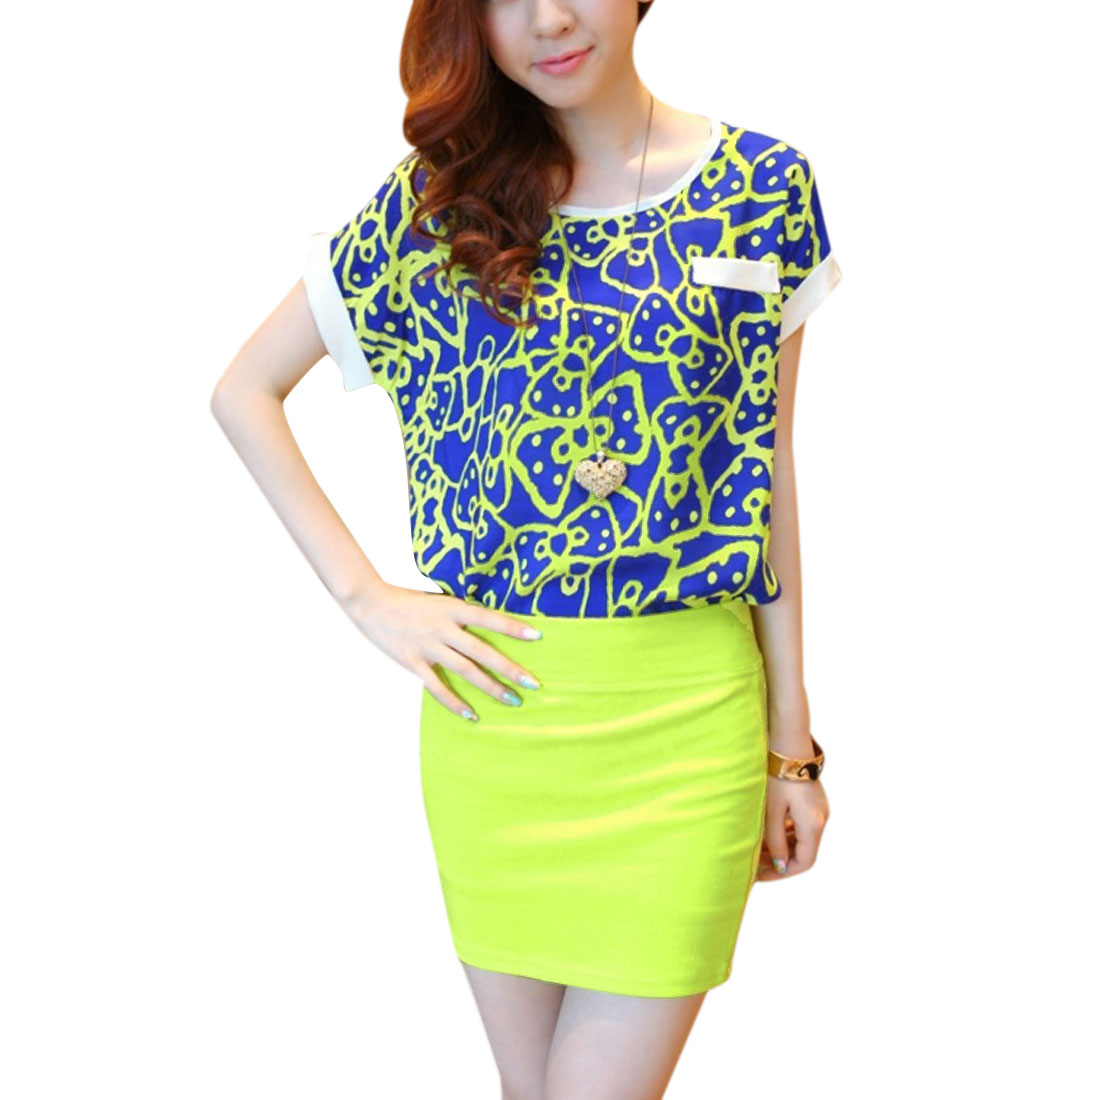 Lady Blue Lime Short Sleeve Decor Chest Pocket Top W Mini Skirt XS